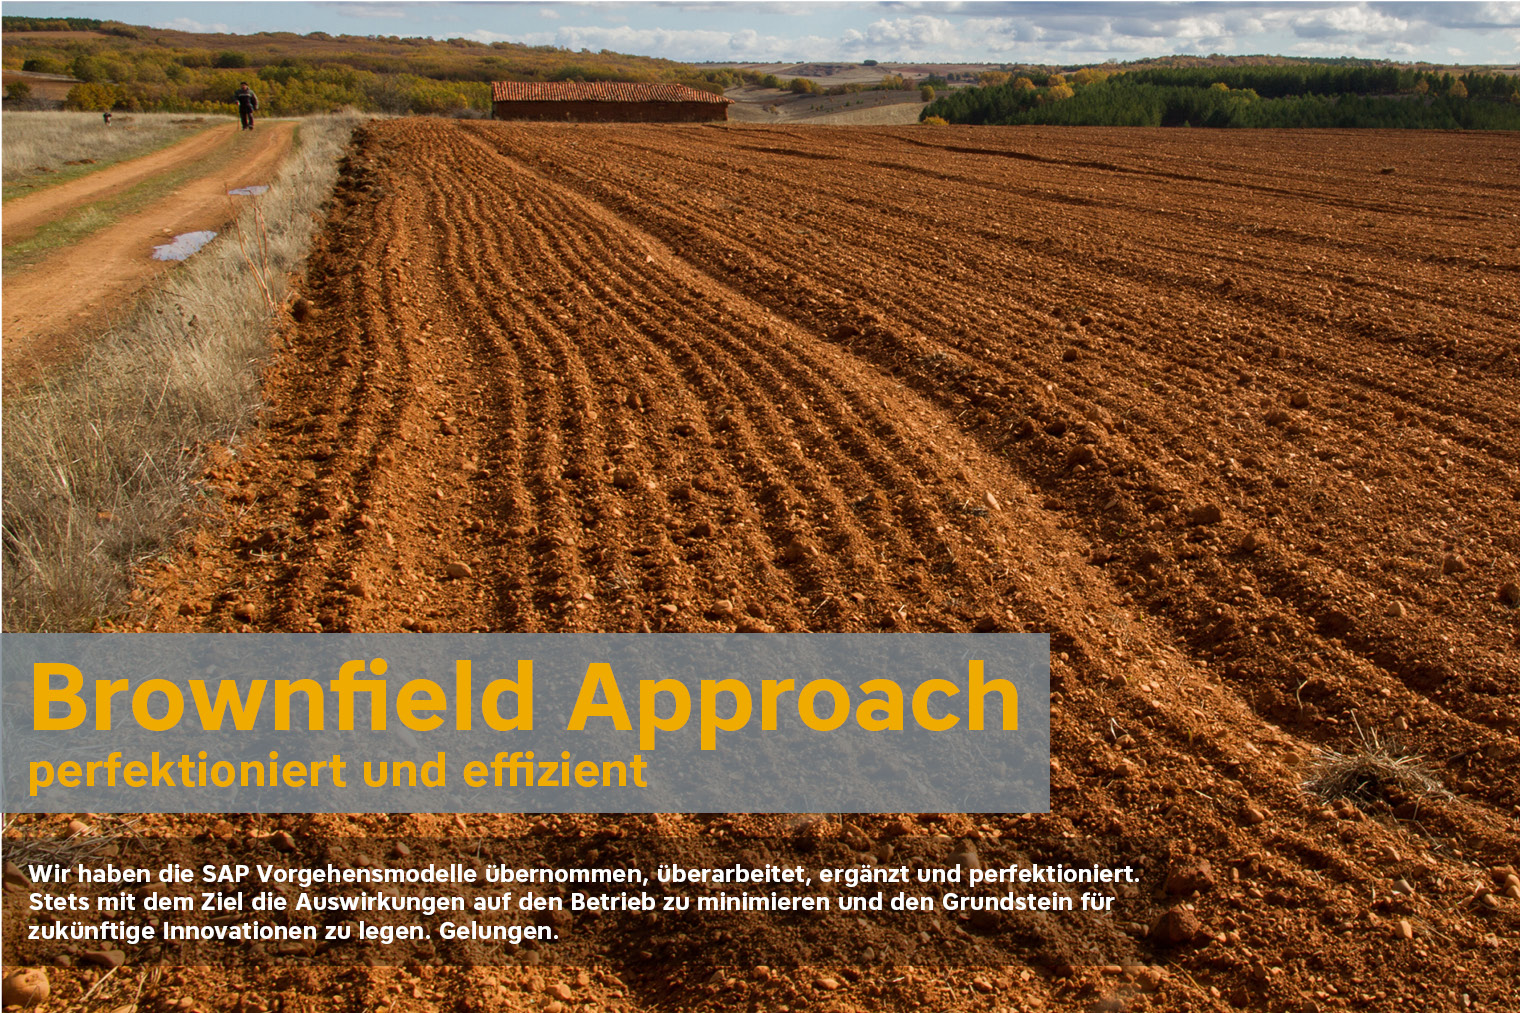 S4HANA Brownfield Approach